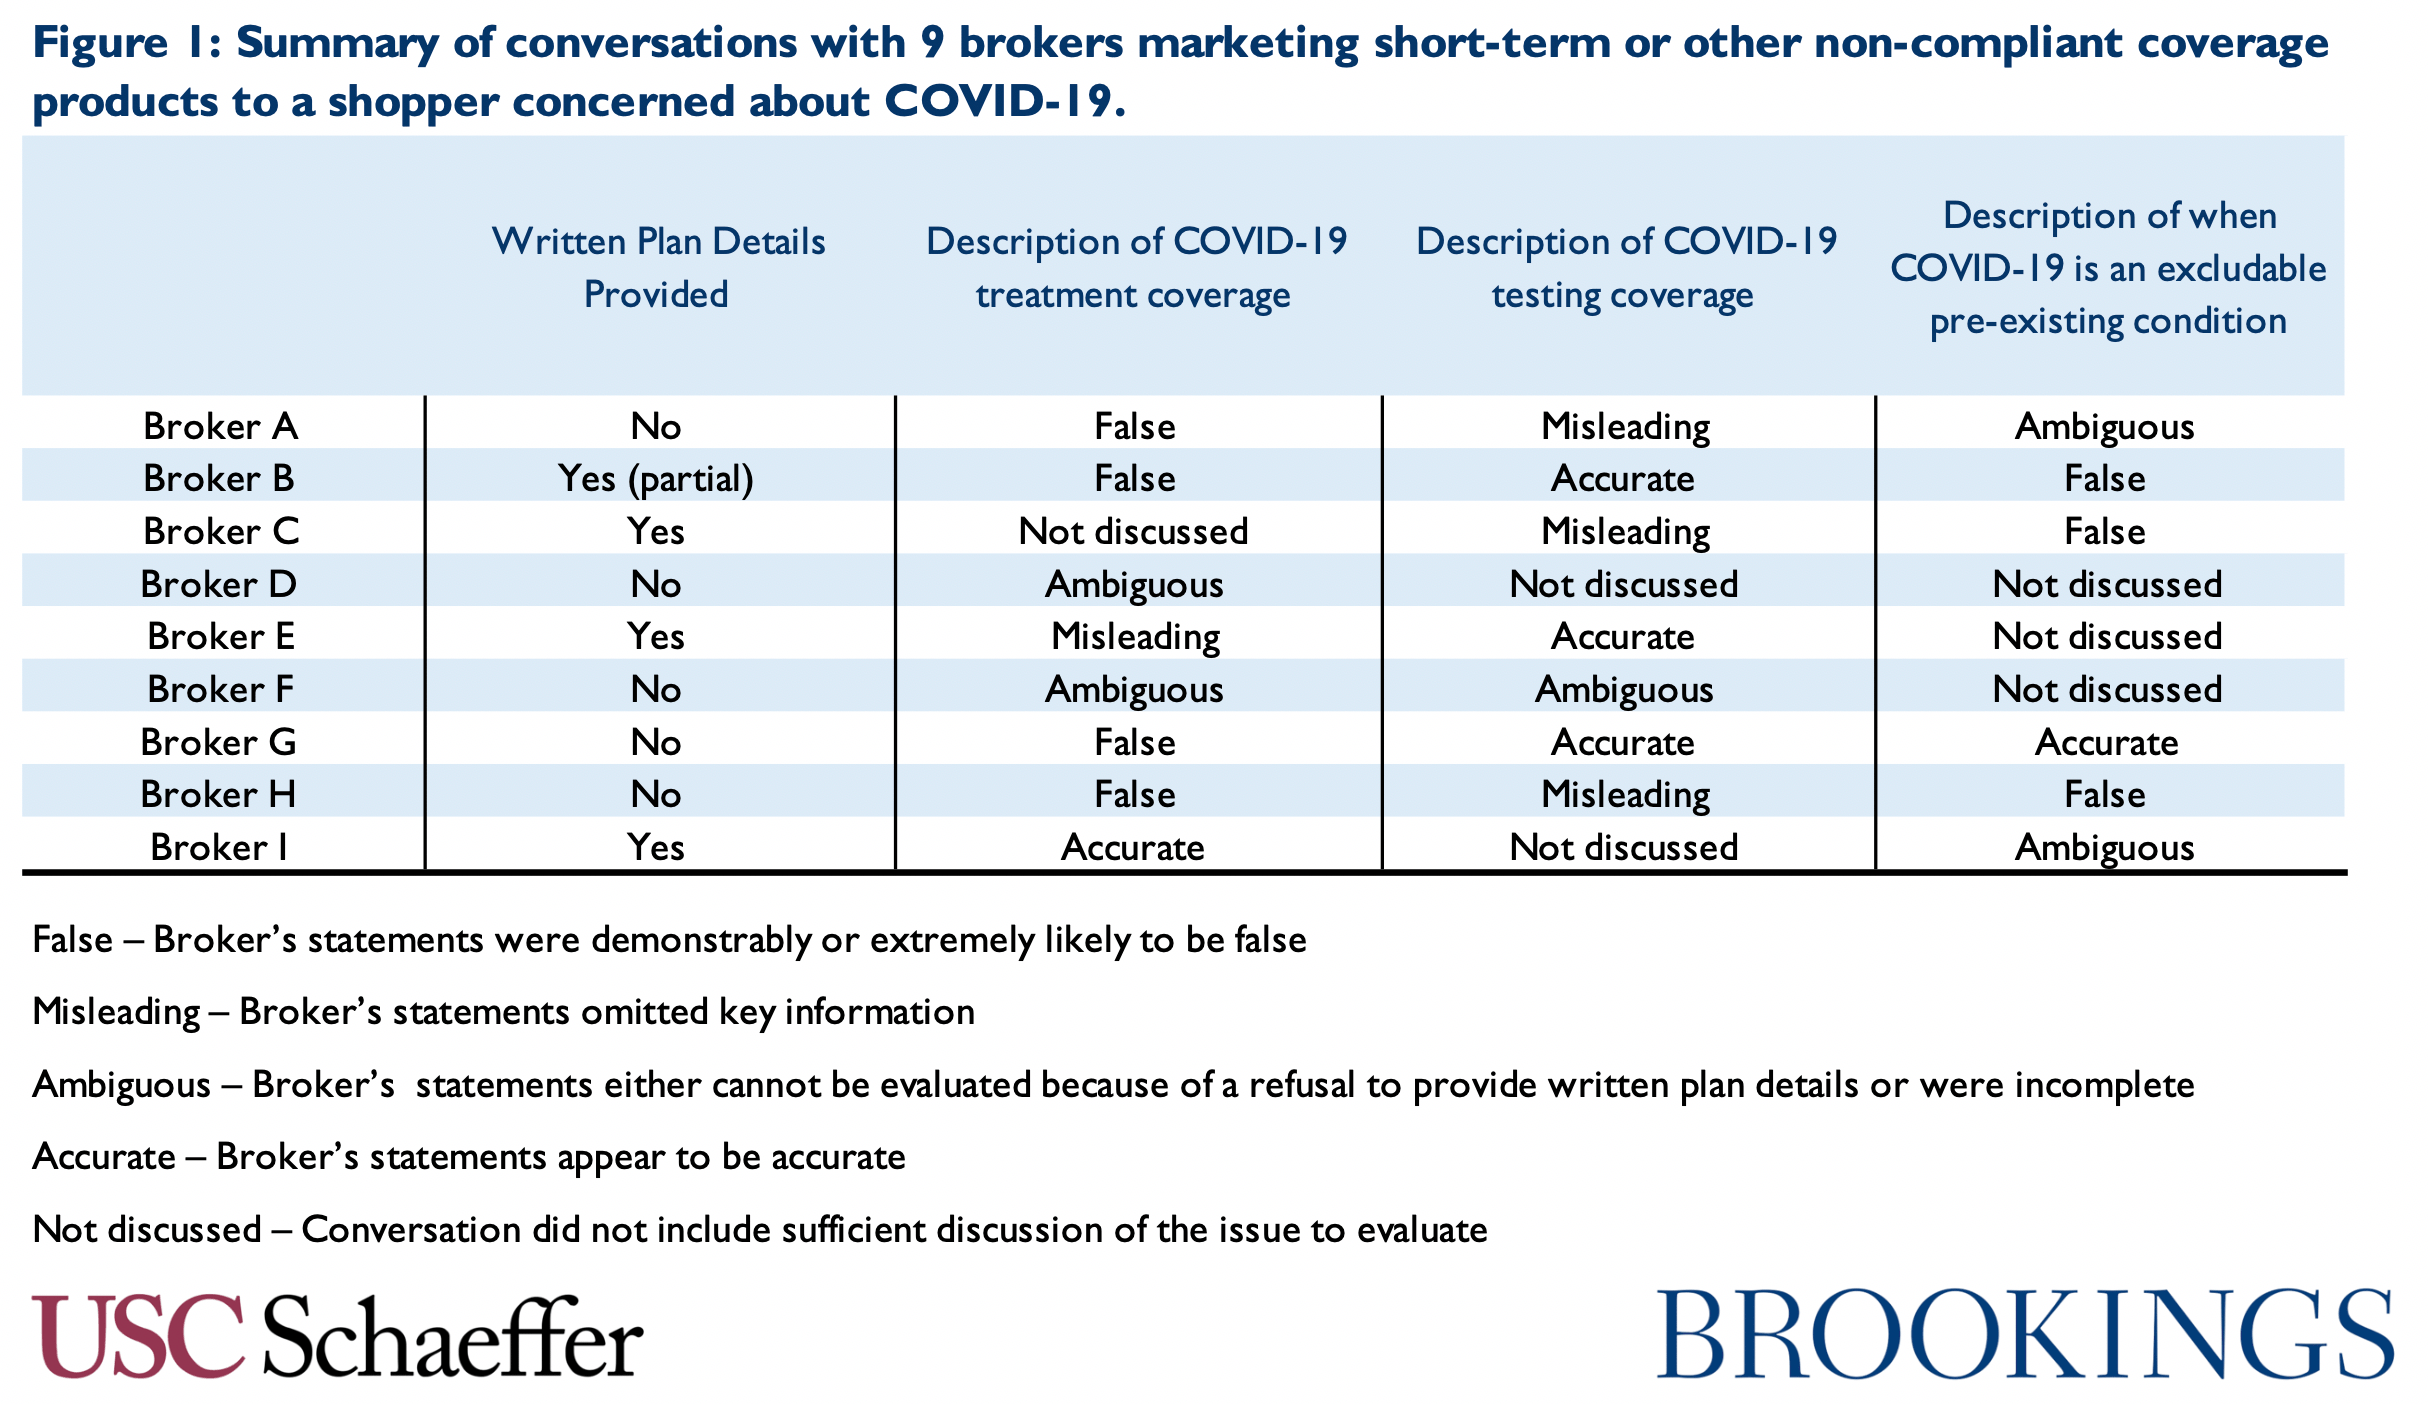 Chart containing a summary of conversations with 9 insurance brokers